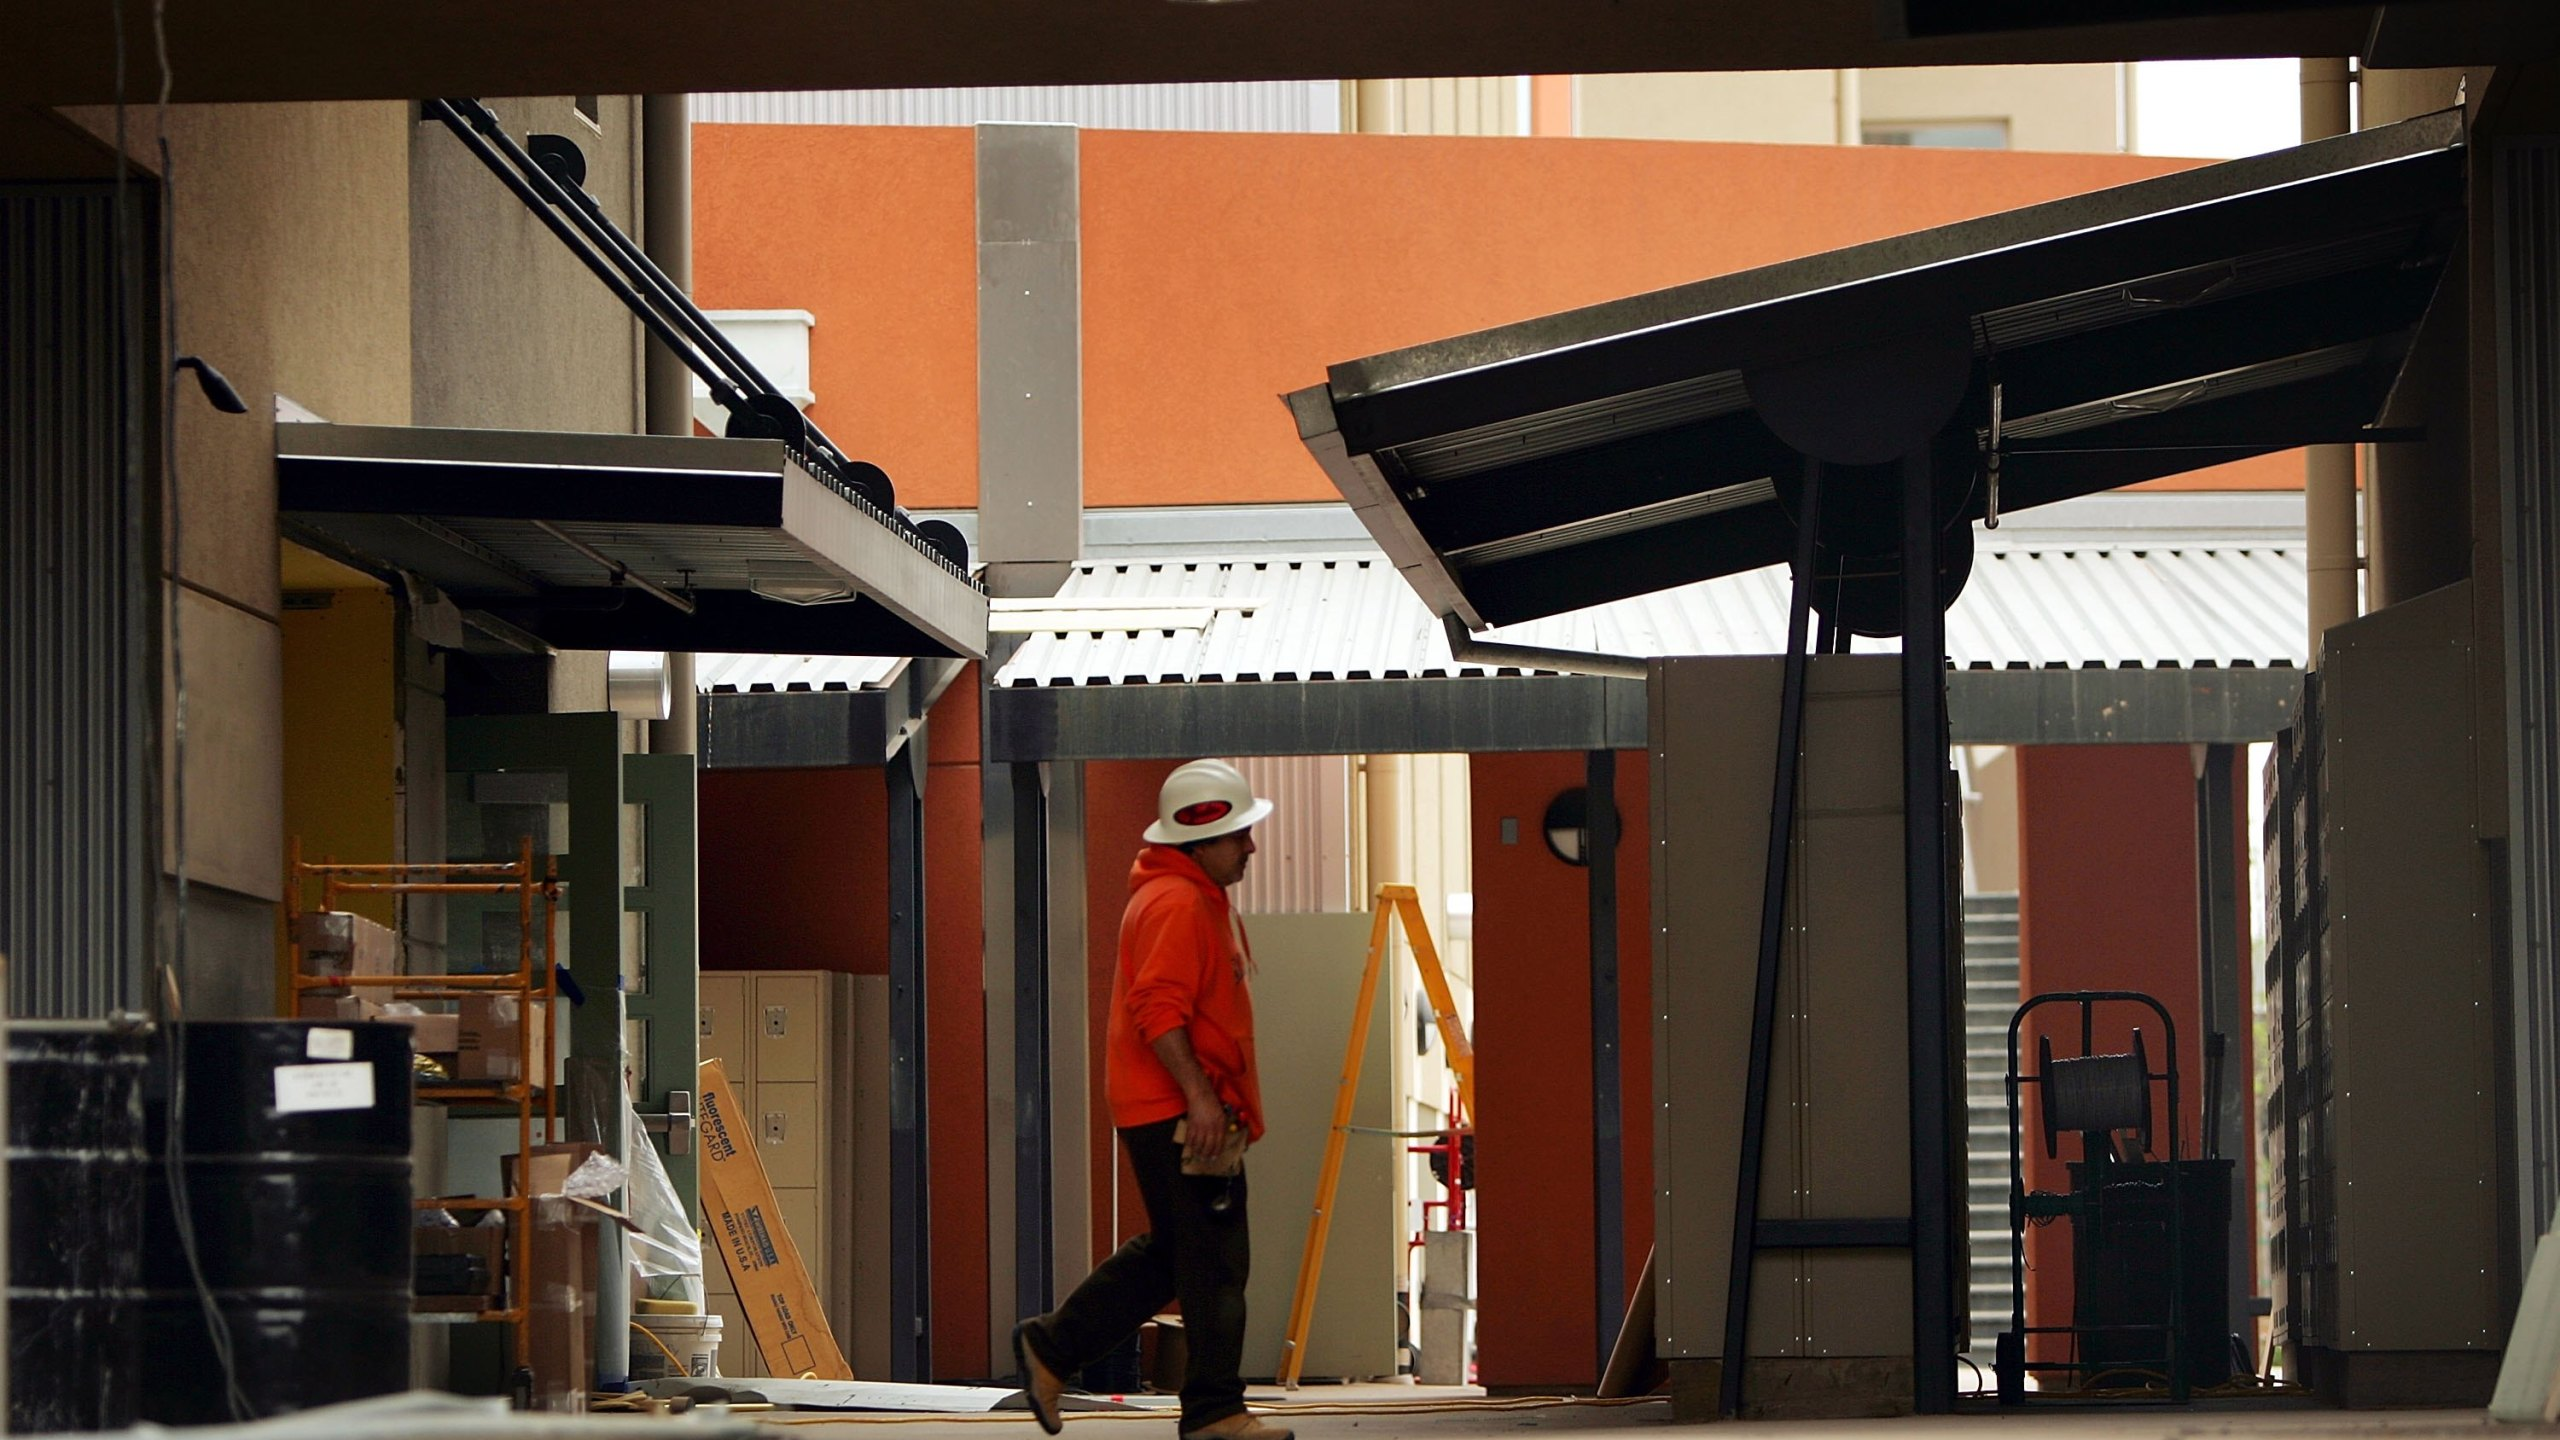 A worker walks through a school under construction in Maywood on May 17, 2006. (Credit: David McNew/Getty Images)